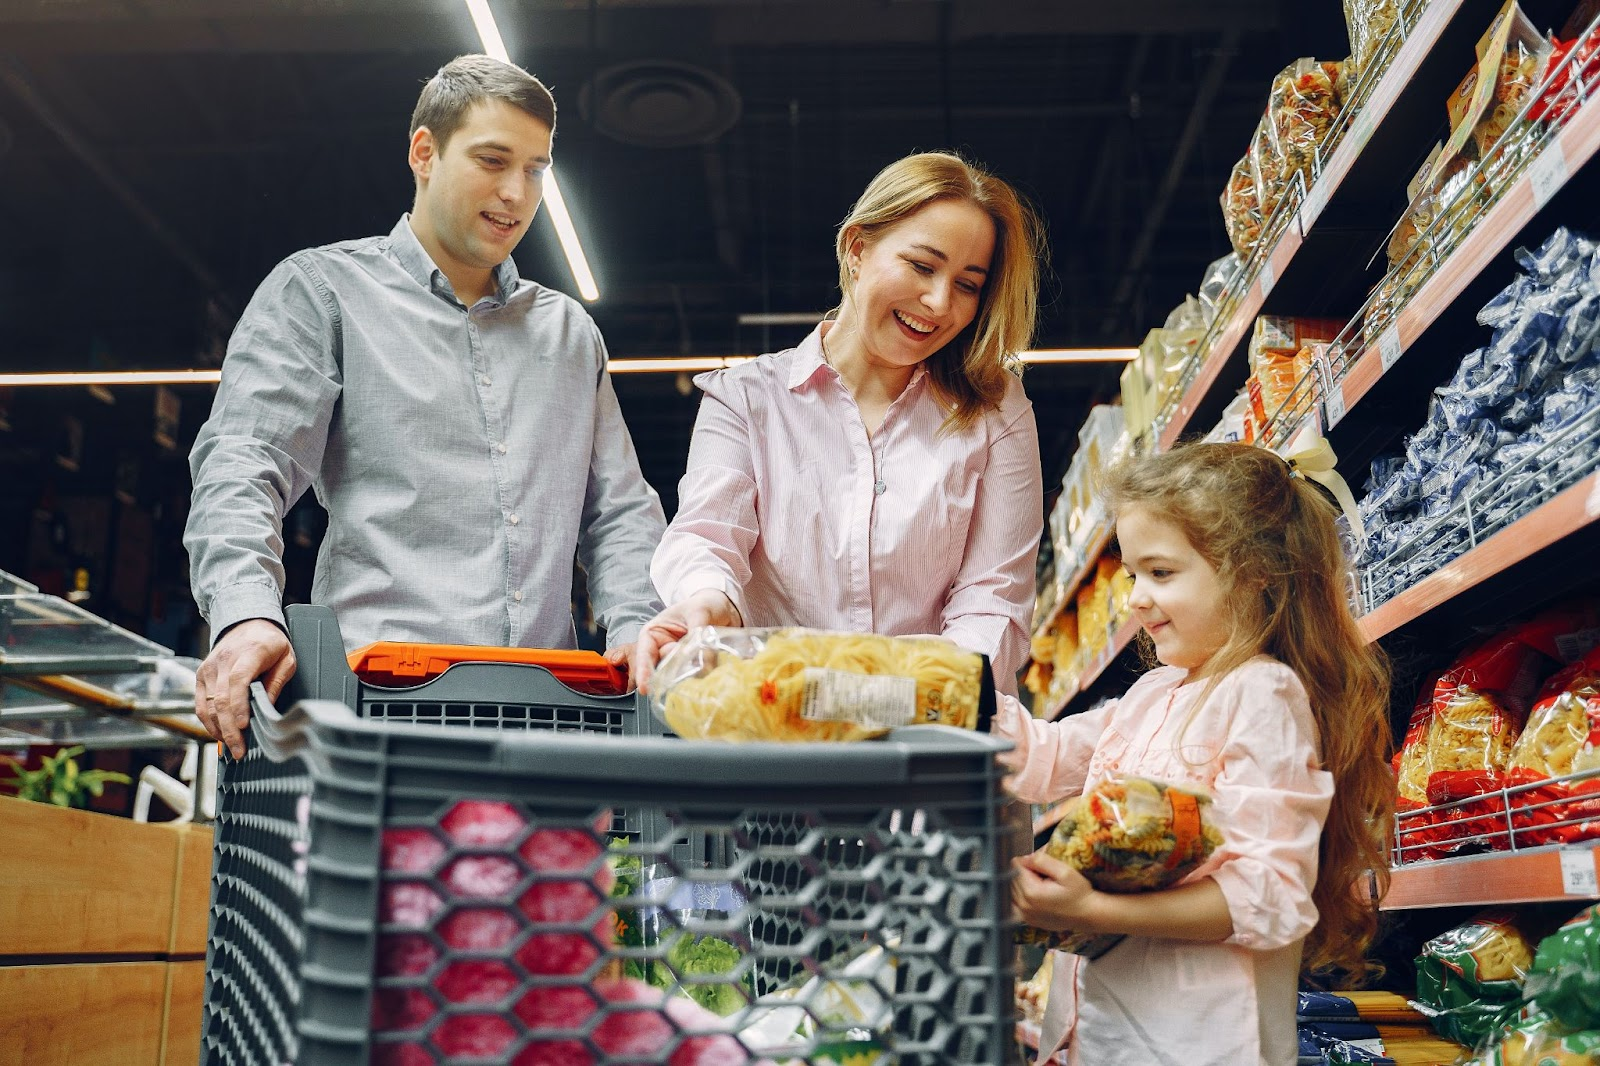 a child learns about financial values by helping grocery shopping